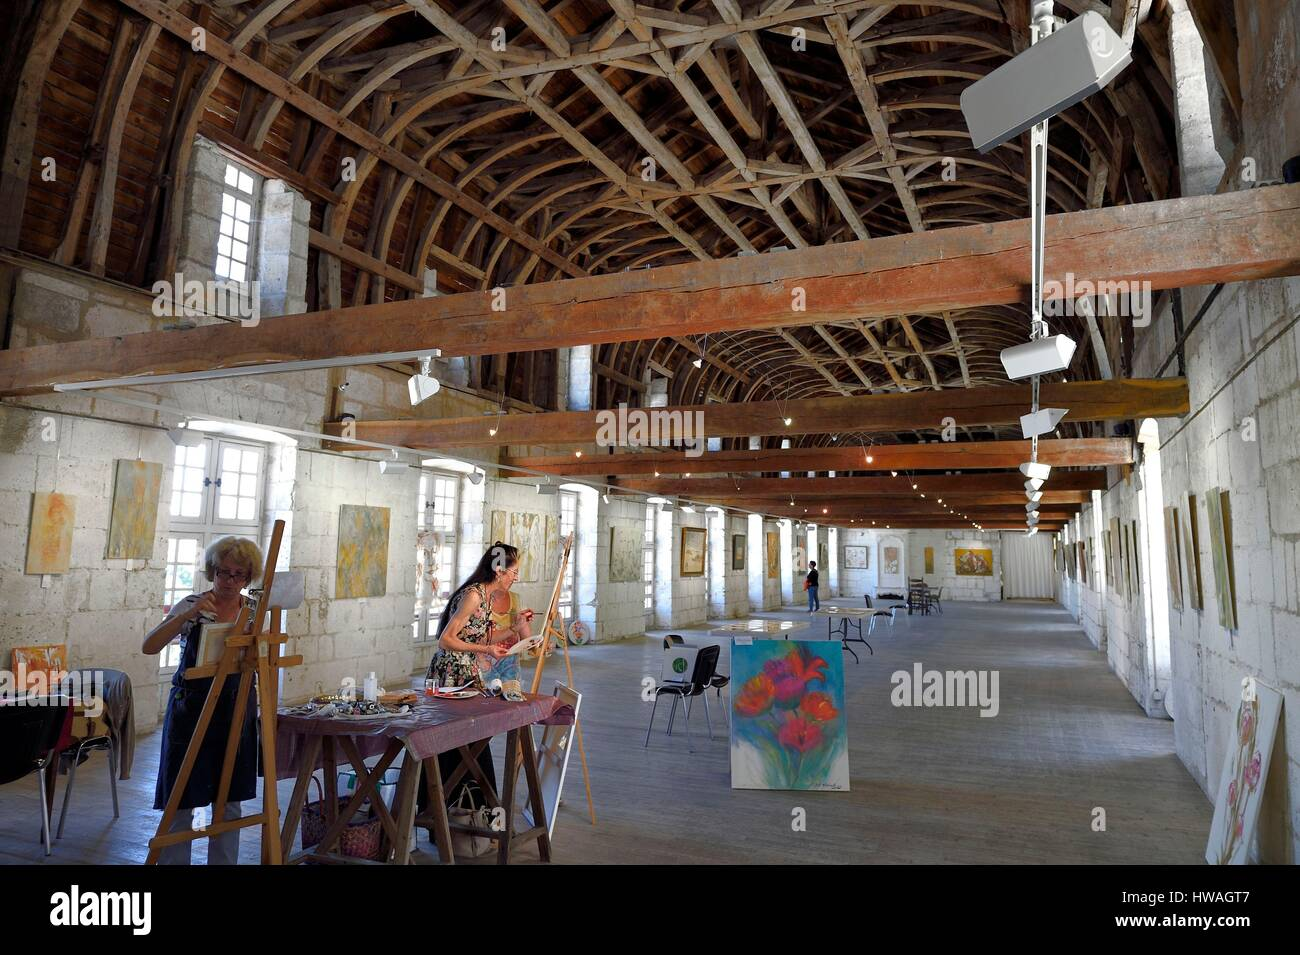 France, Dordogne, Brantome, Saint Pierre benedictine abbey, monks' dormitory with a roof boat shaped - Stock Image